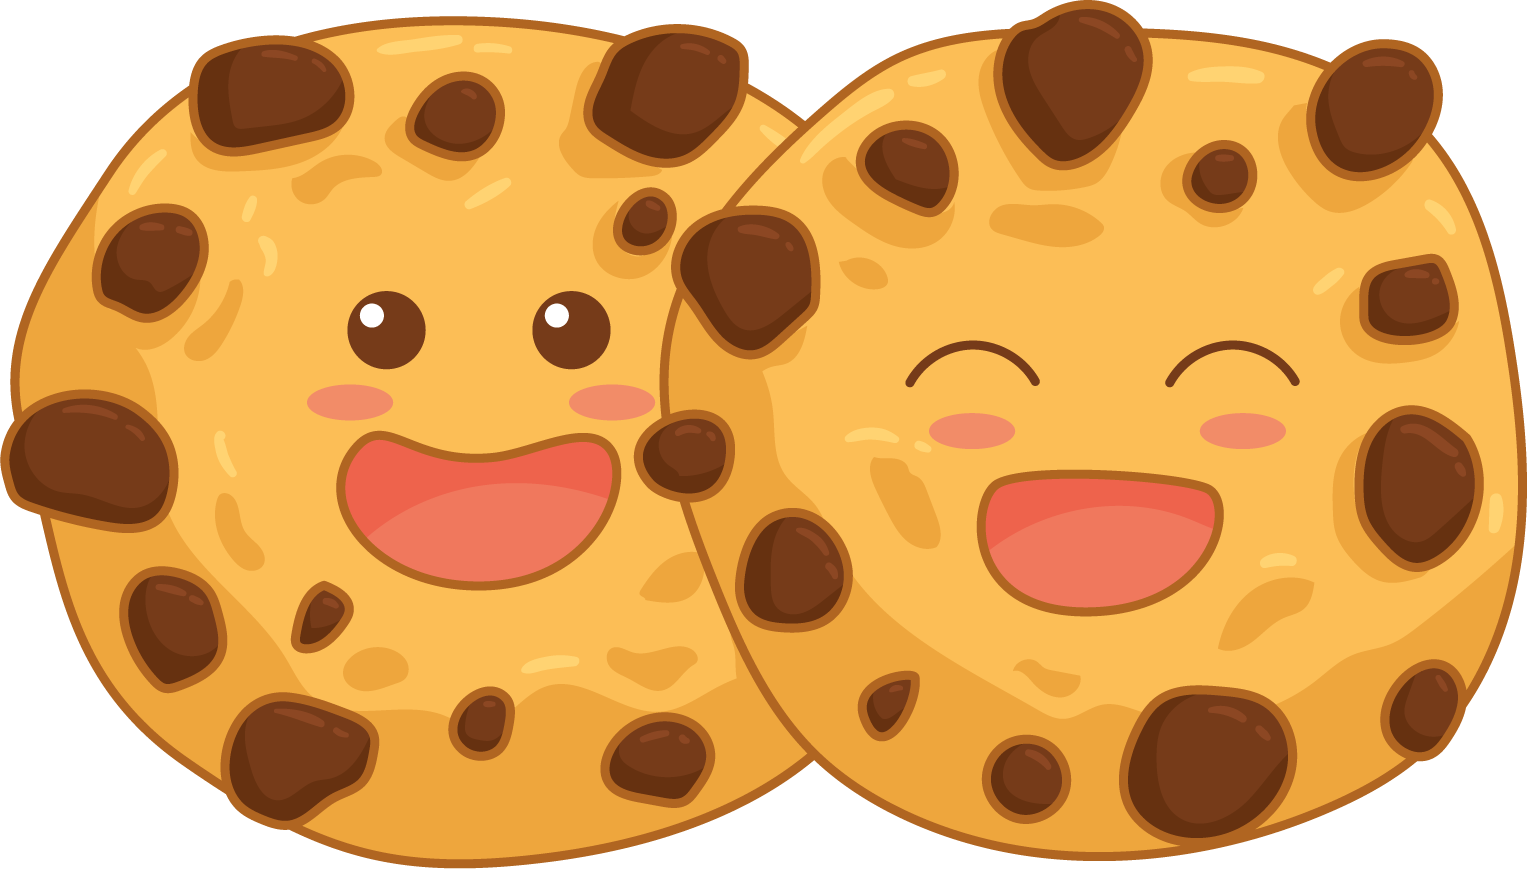 Cookies clipart. Cookie png transparent free